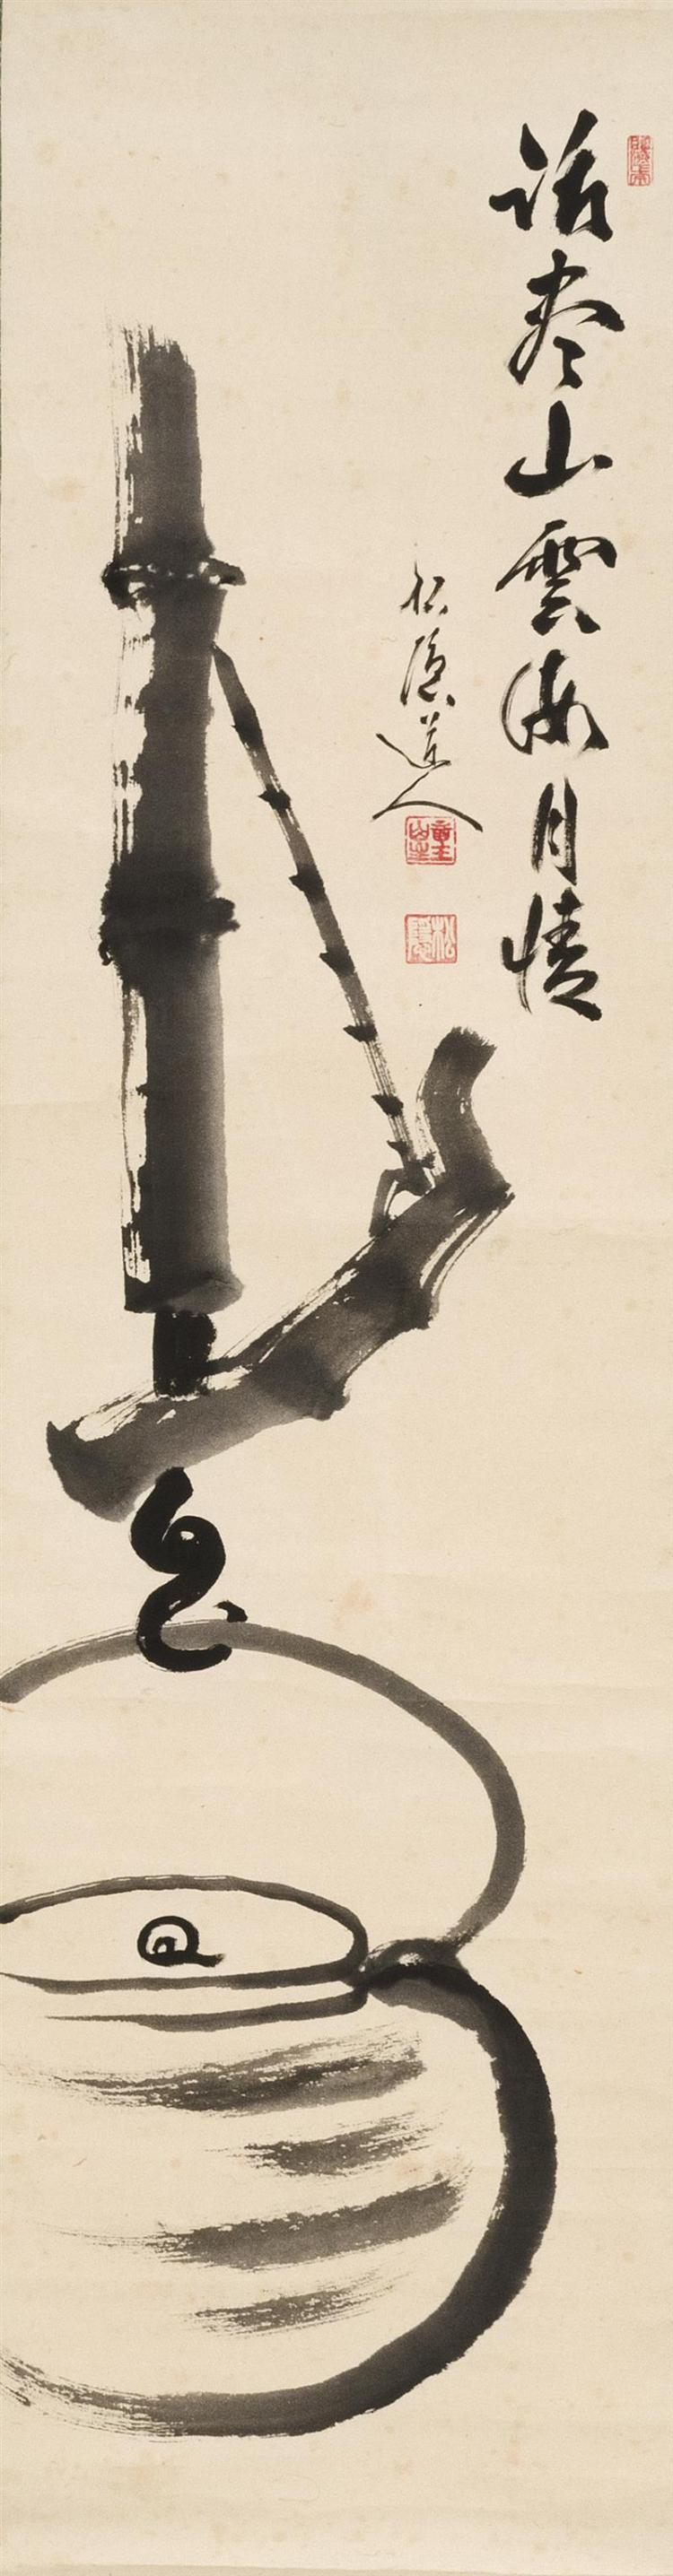 SCROLL PAINTING ON PAPER Depicting a kettle and jizai. With calligraphy and seal marks. 38.25